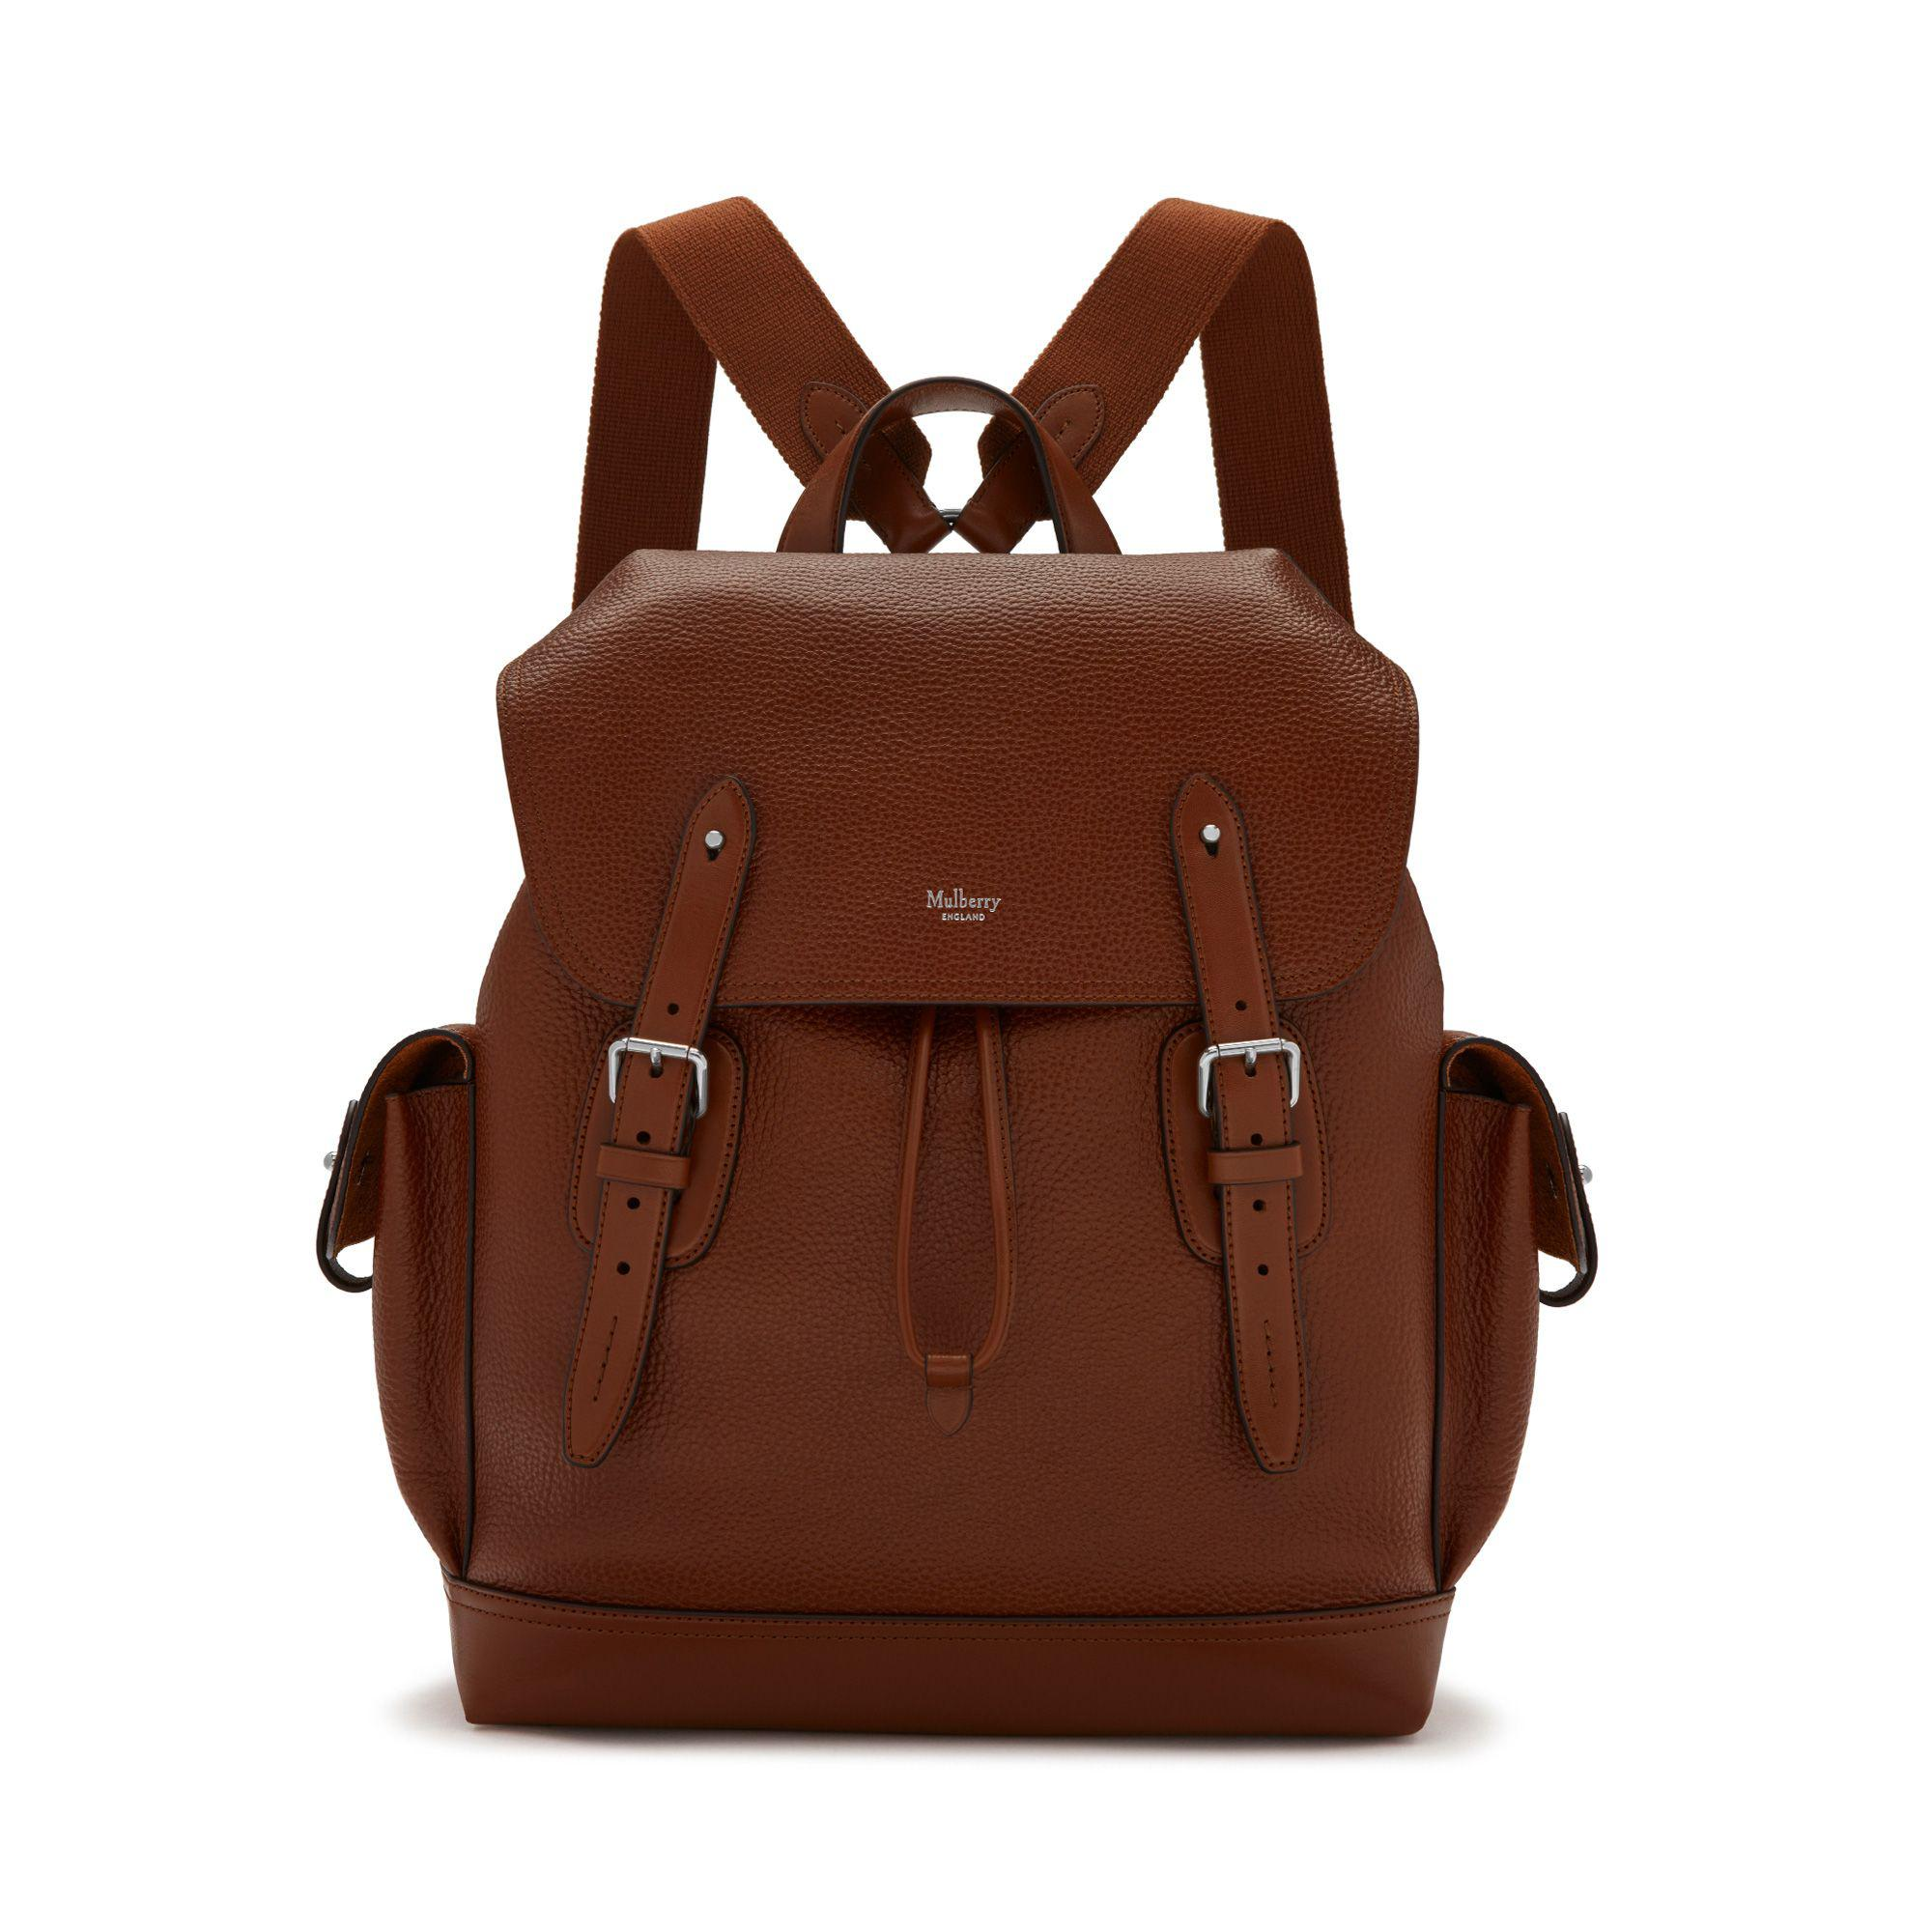 559e891427 Mulberry - Brown Heritage Backpack In Oak Natural Grain Leather for Men -  Lyst. View fullscreen